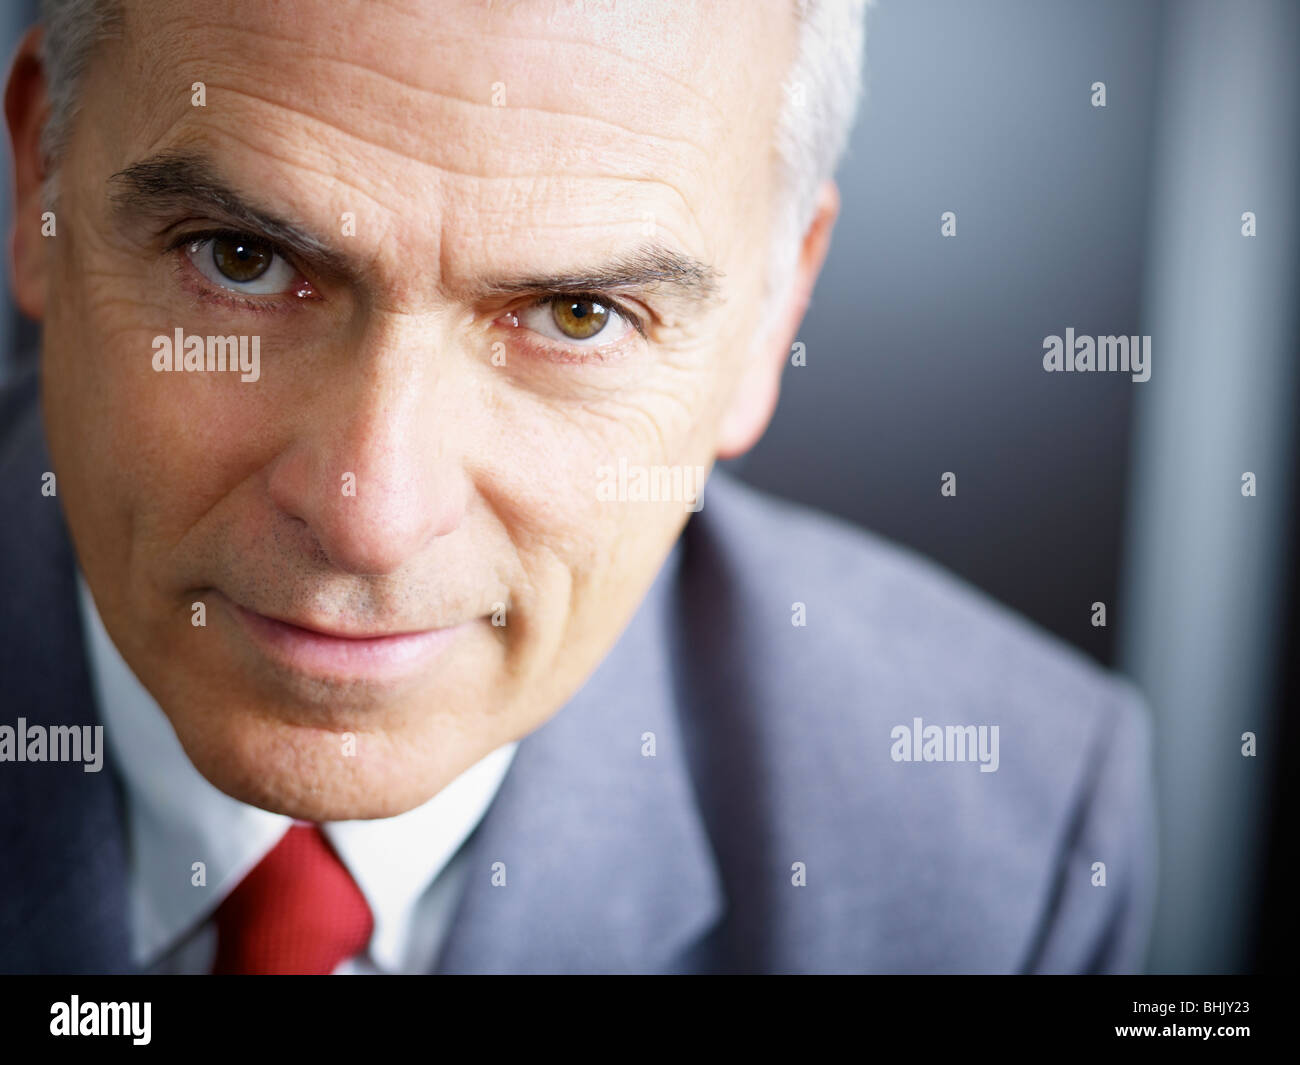 closeup of mature business man looking at camera. Copy space - Stock Image